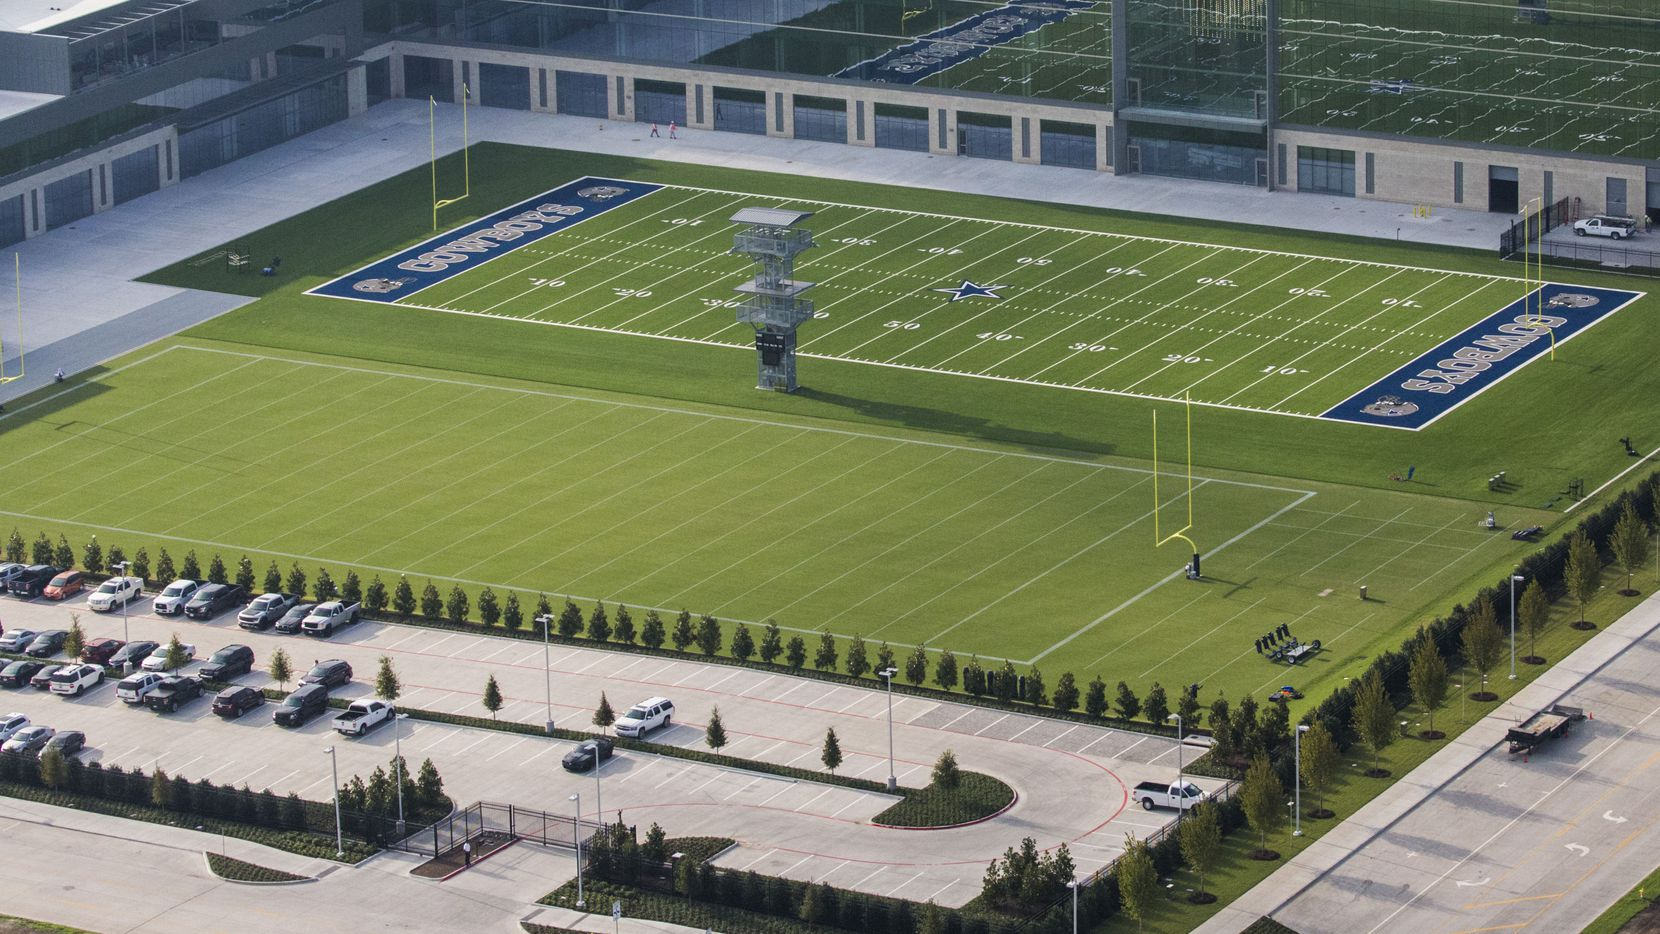 The corporate office building would be on the site which is currently used as a parking lot (lower left), directly across from the offices of the Dallas Cowboys.